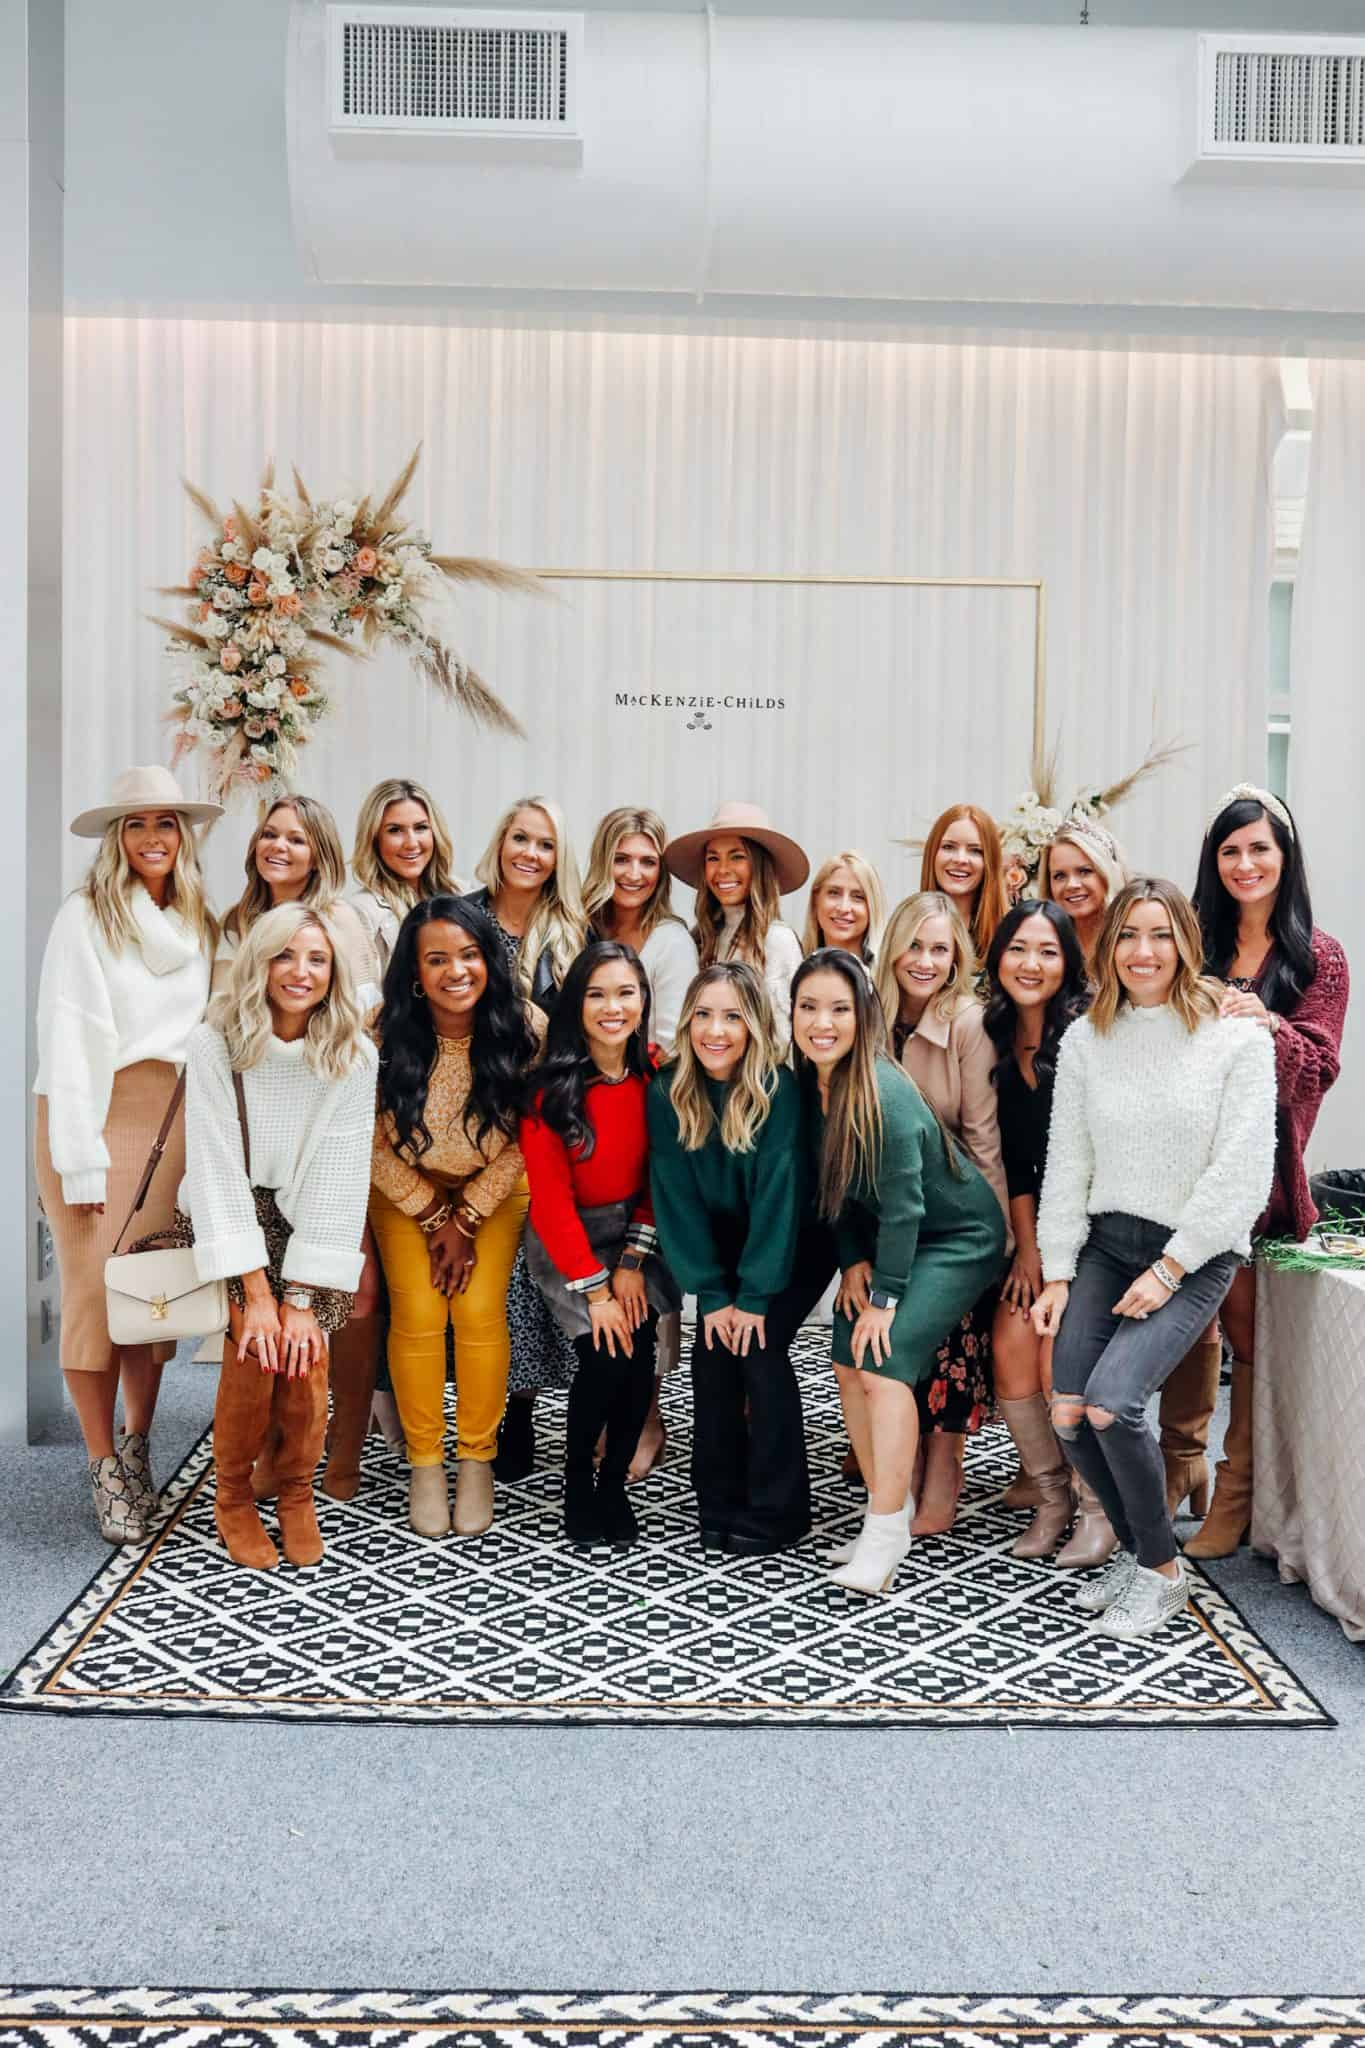 MacKenzie Childs Table Setting Ideas by popular Texas life and style blog, Glamorous Versatility: image of Texas bloggers at a MacKenzie Childs event.